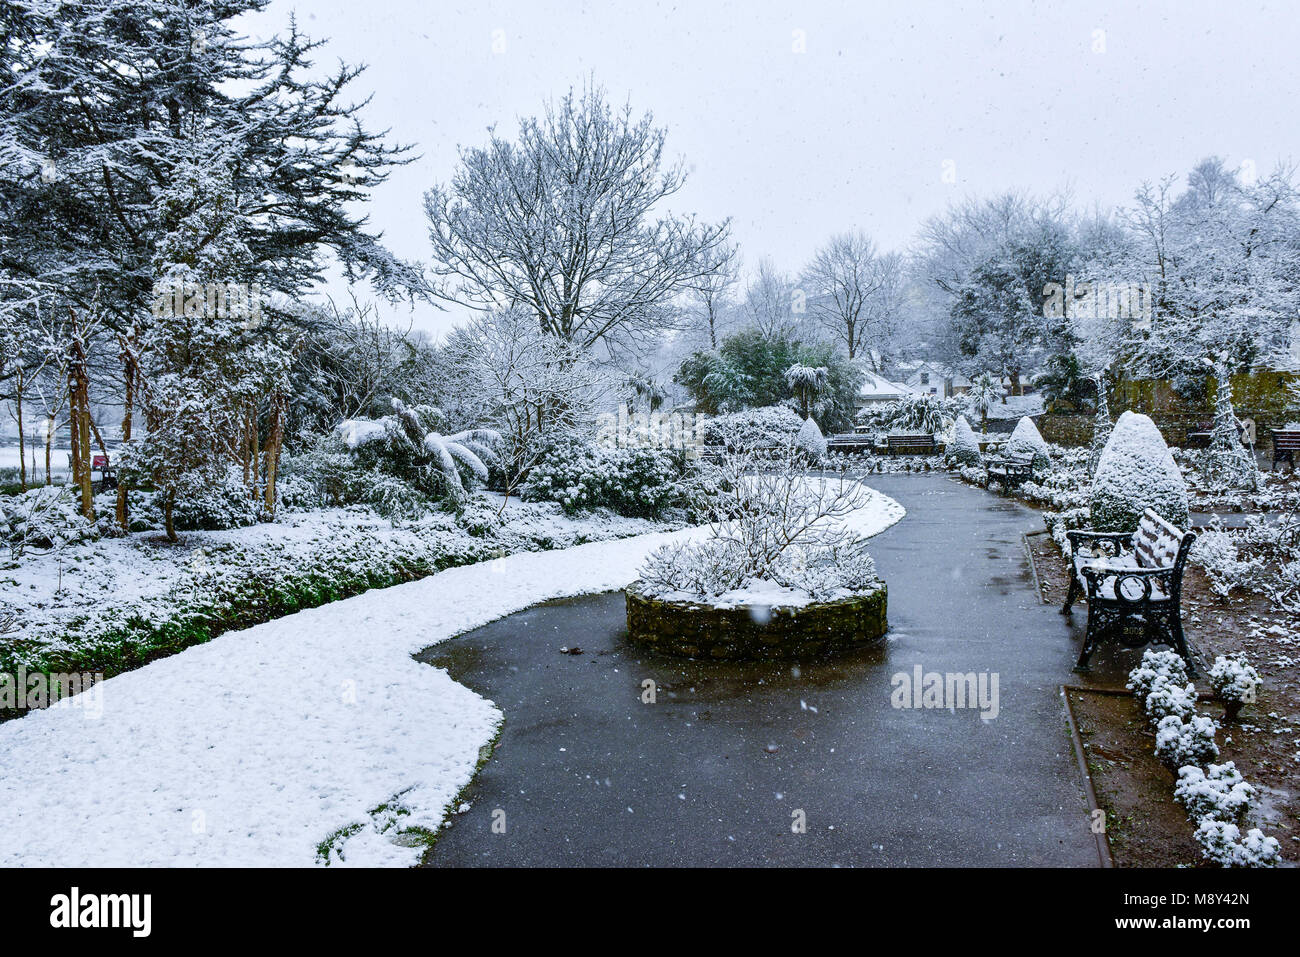 Snow falling over the historic trenance gardens in Newquay Cornwall. - Stock Image